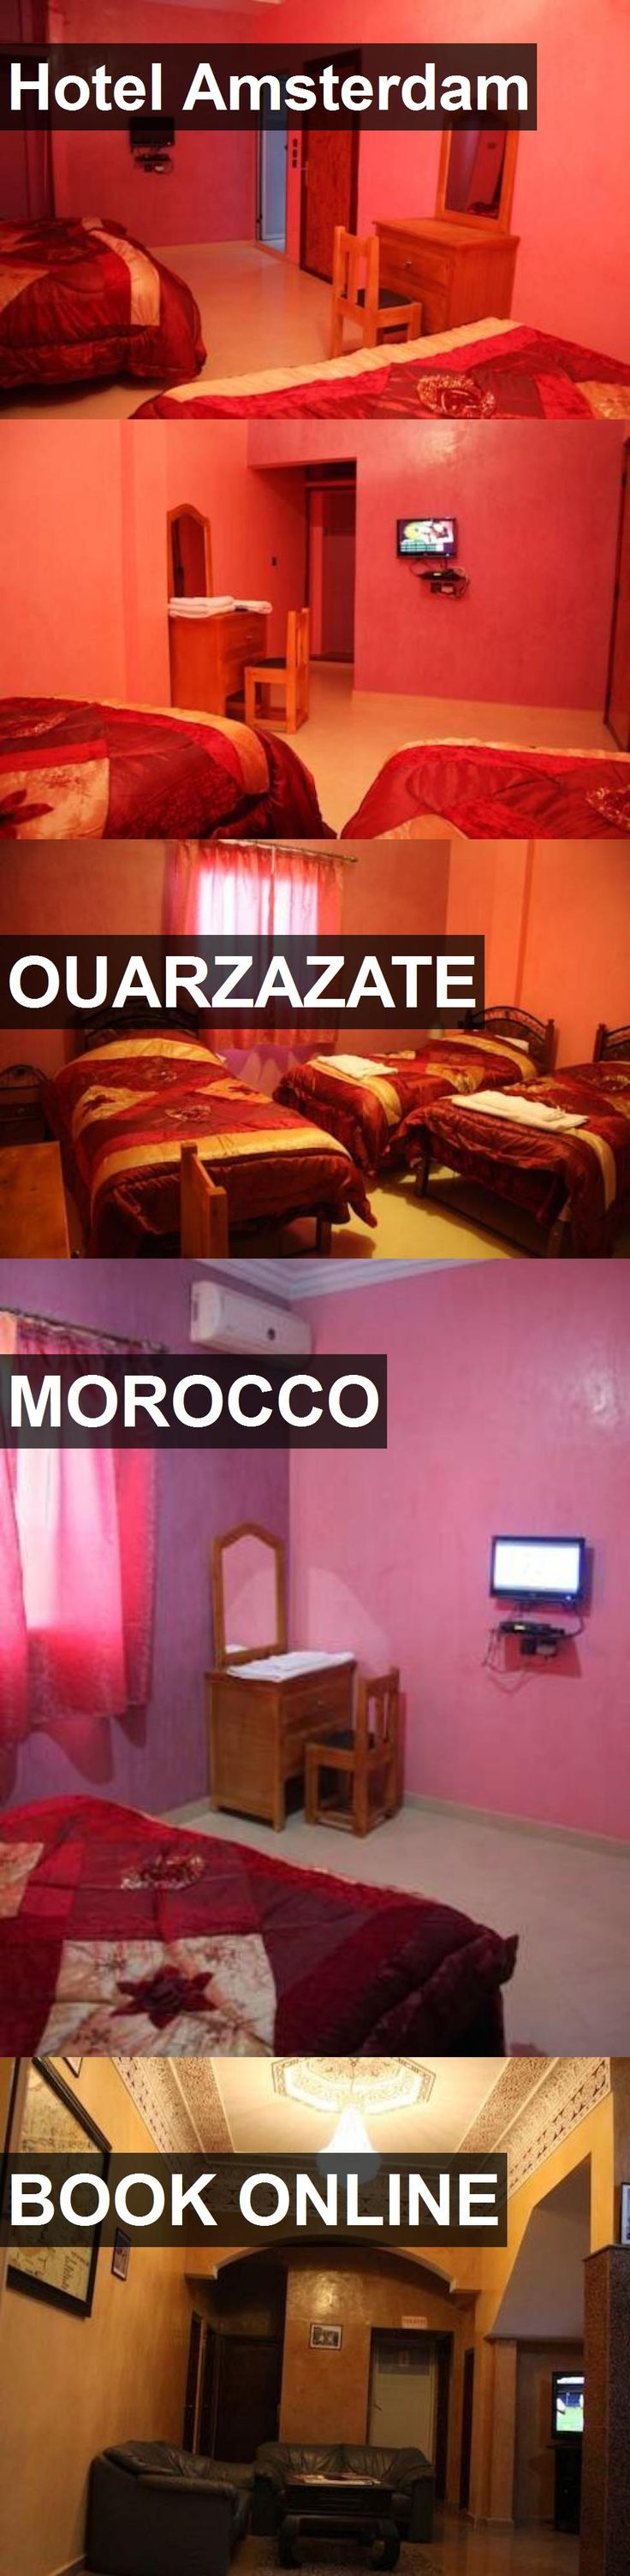 Hotel Amsterdam in Ouarzazate, Morocco. For more information, photos, reviews and best prices please follow the link. #Morocco #Ouarzazate #travel #vacation #hotel